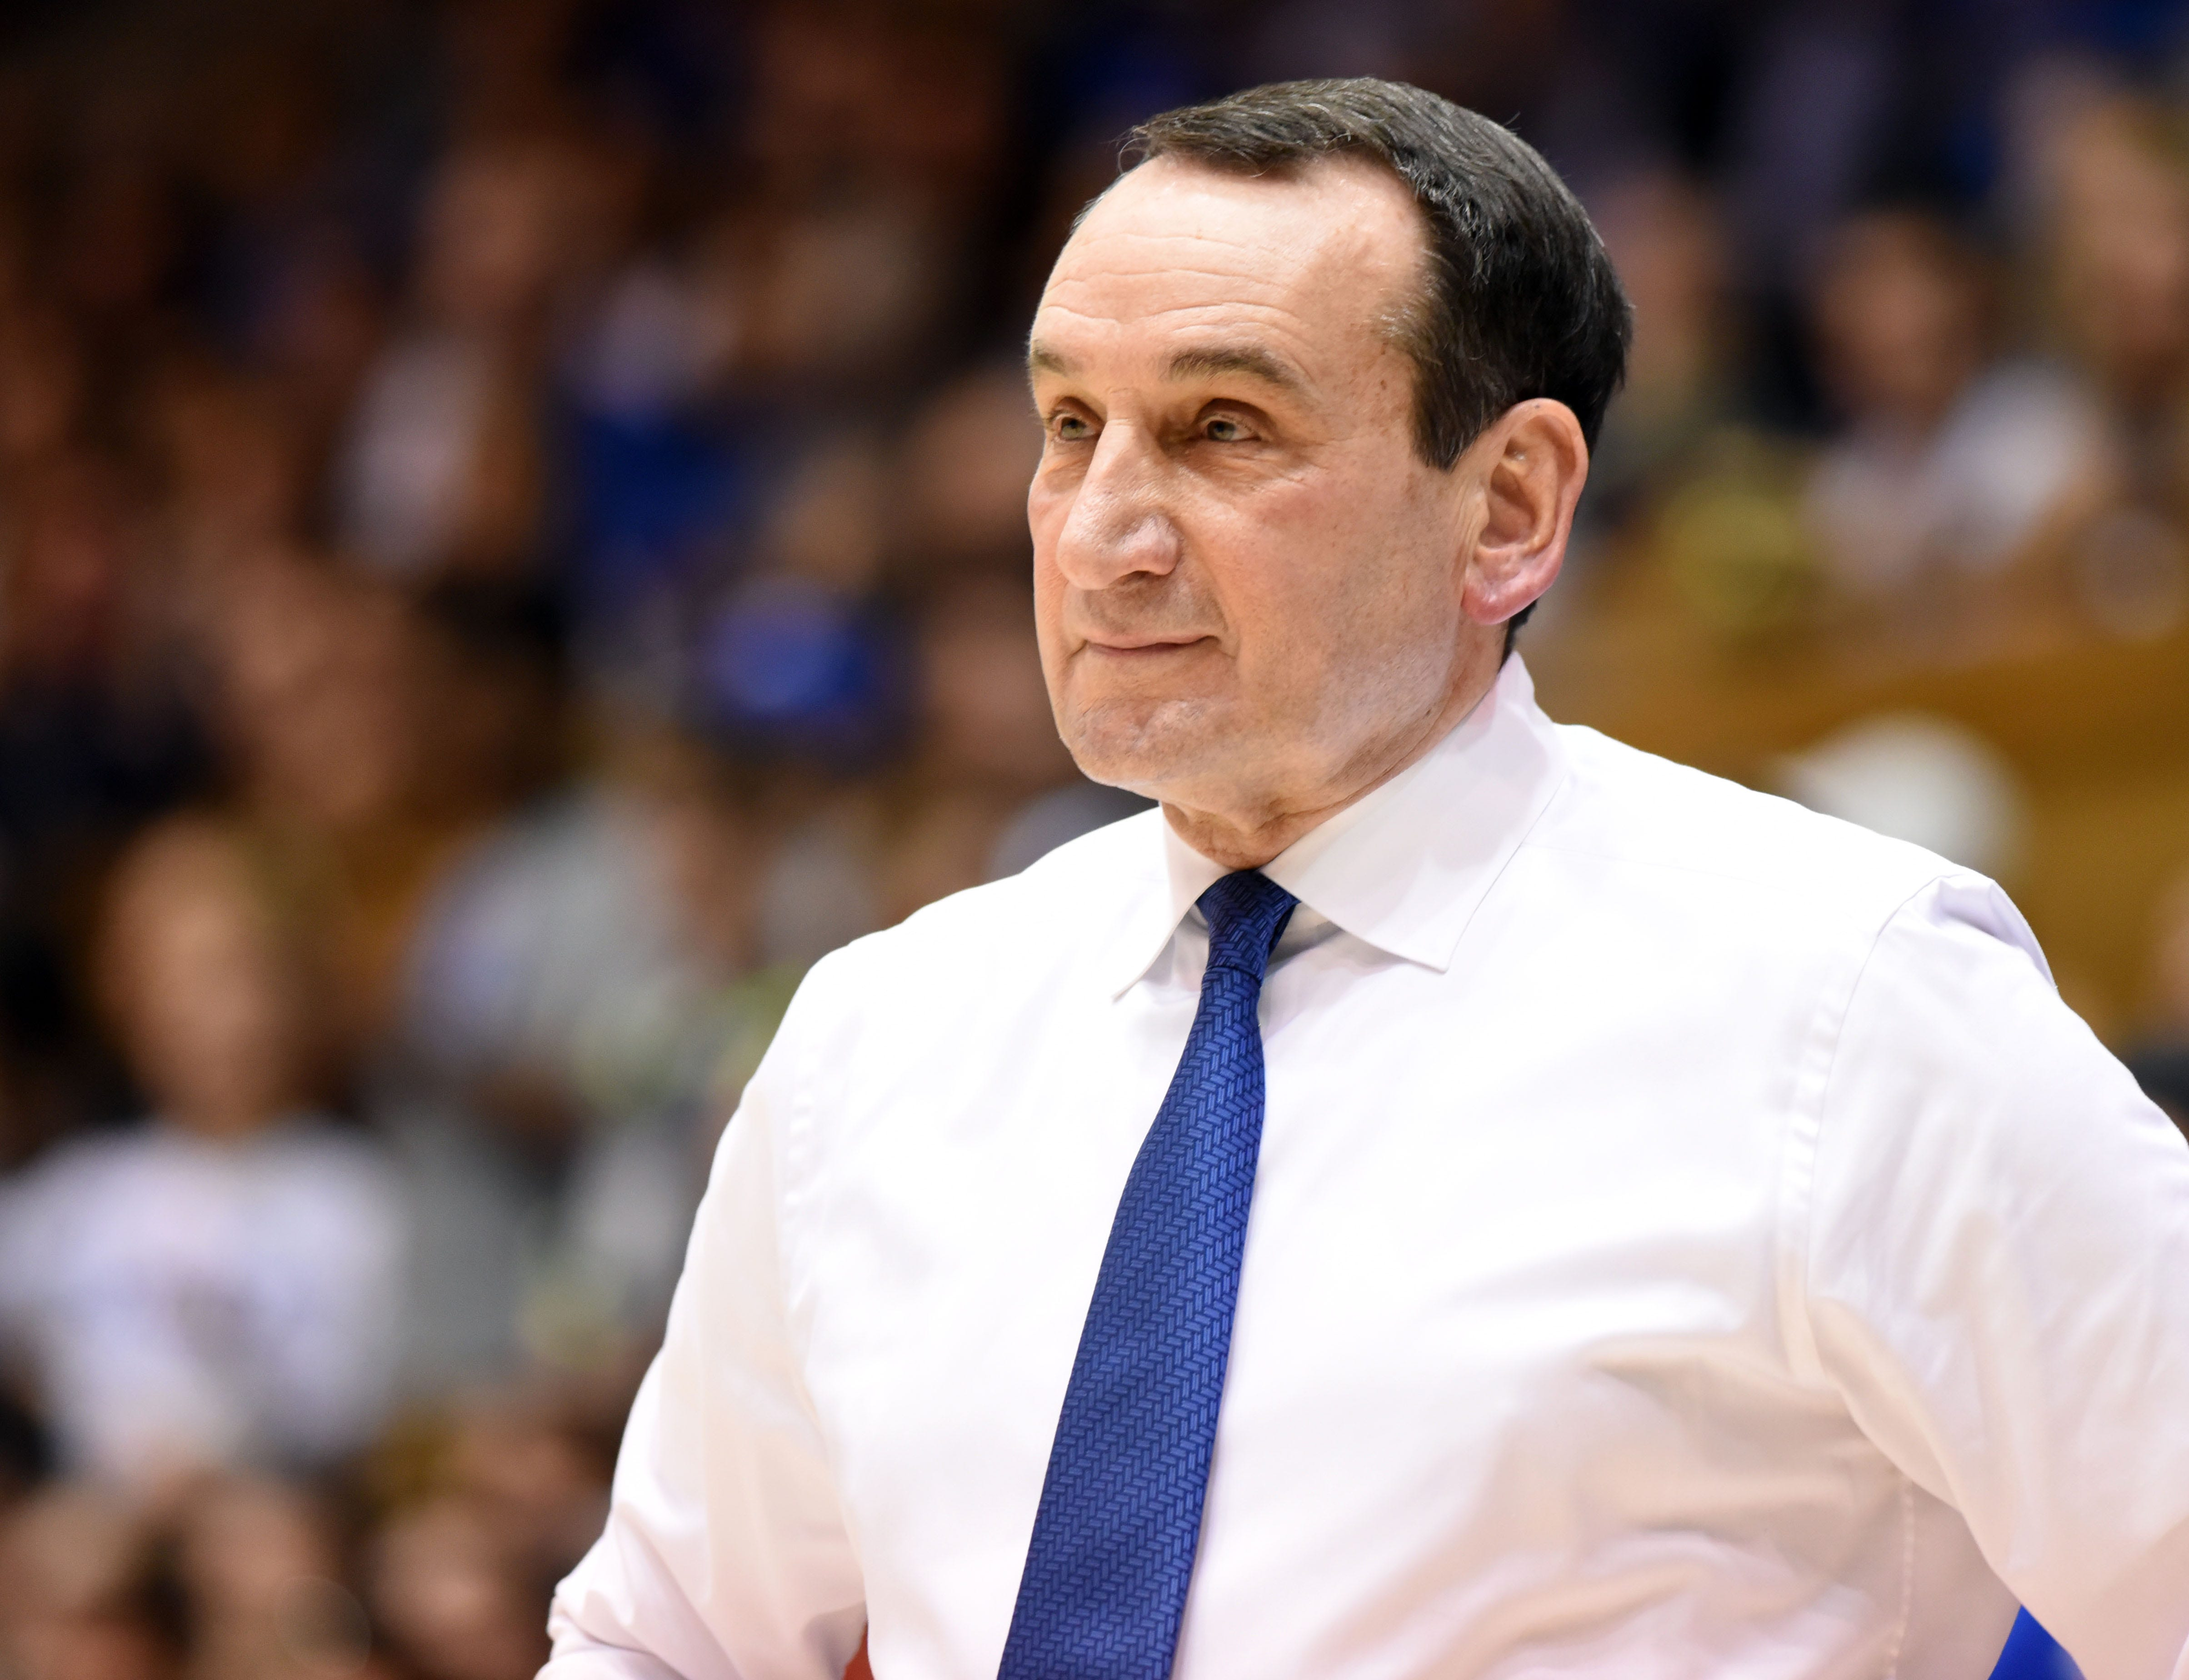 Mike Krzyzewski addresses Corey Maggette being accused of rape during his time at Duke